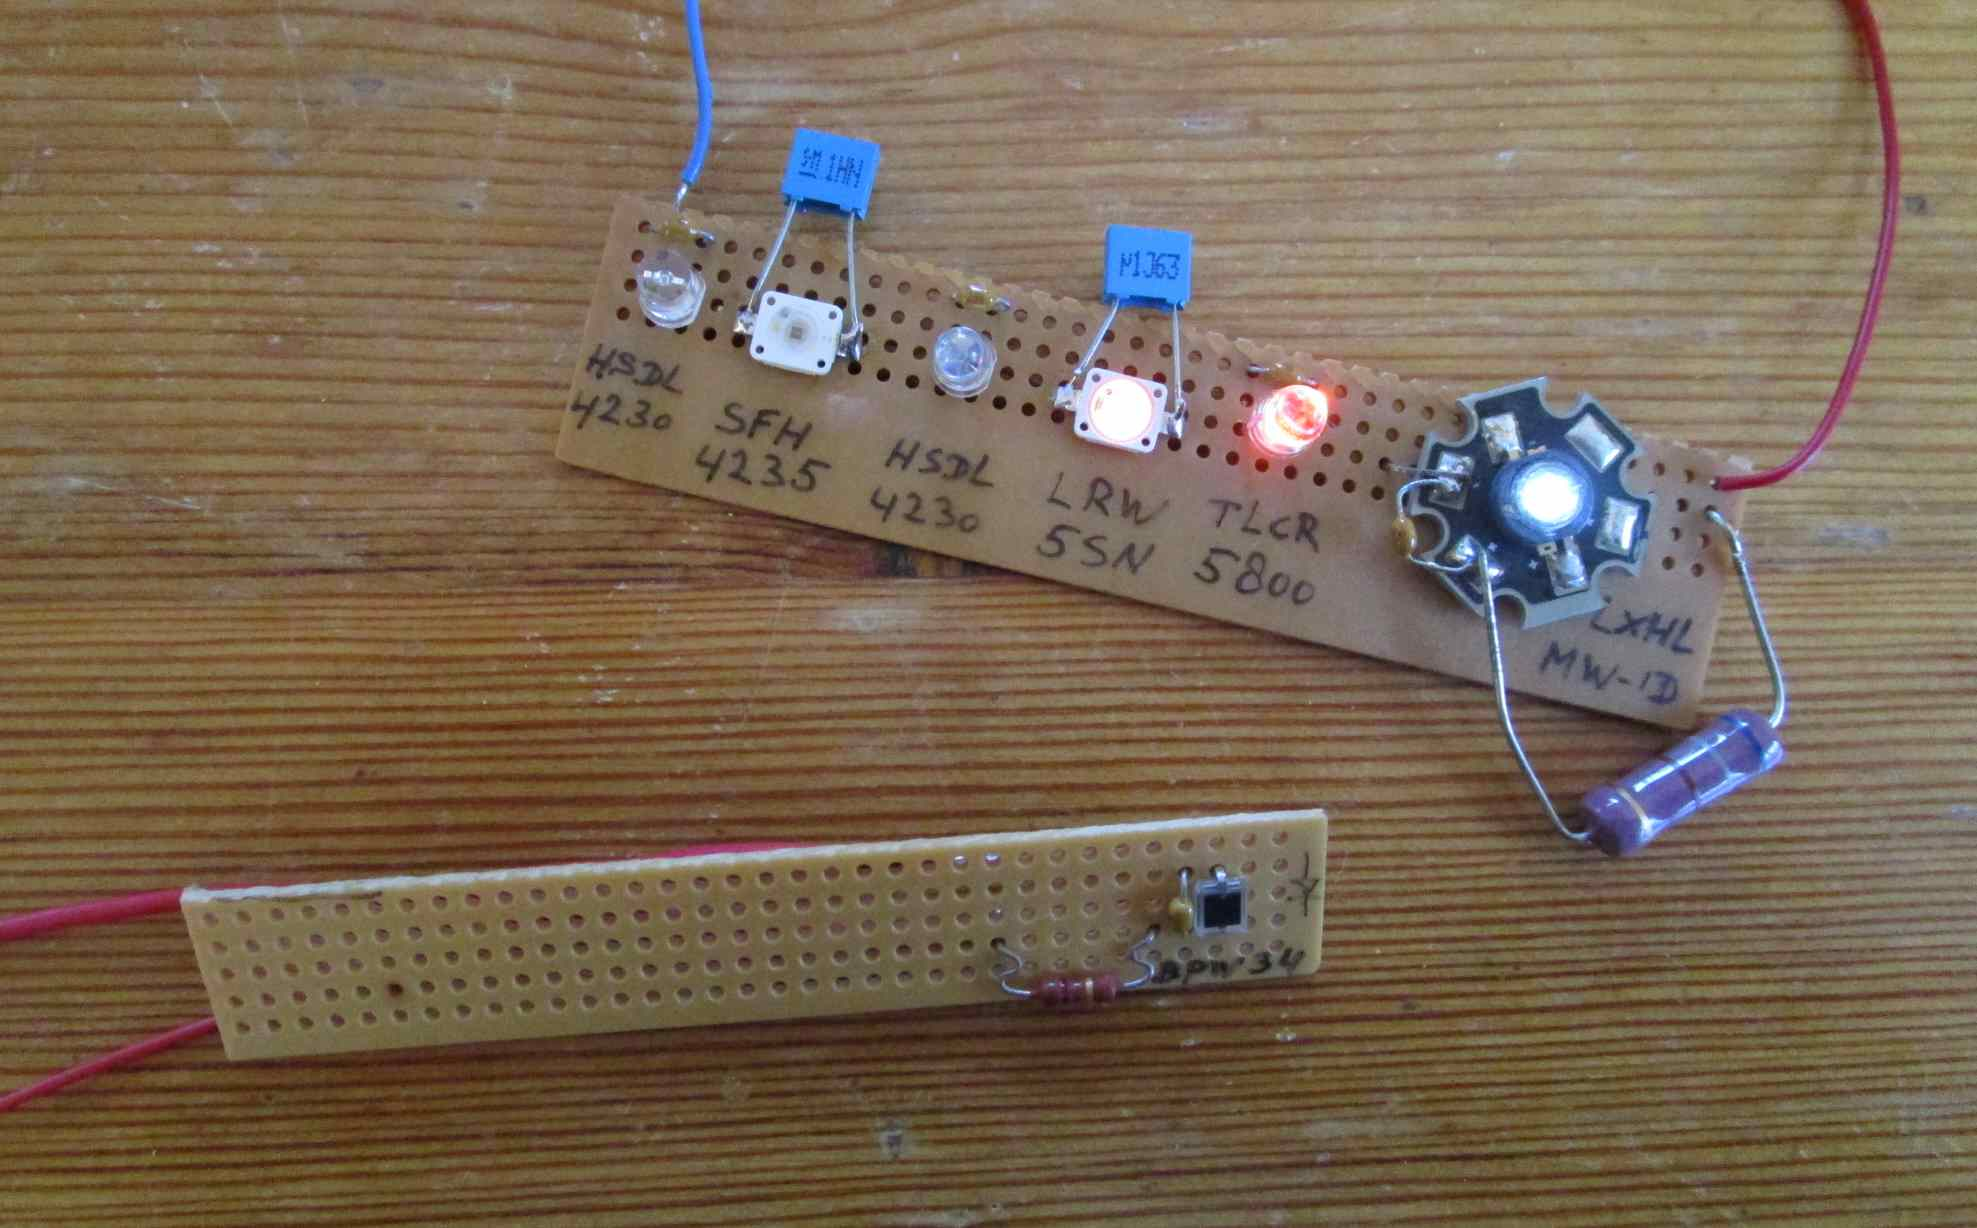 Photodiode Circuit Board Best Secret Wiring Diagram Lightemitting Diode Ledandlightcircuit Amplifier With Led And Rh Dicks Website Eu Basic